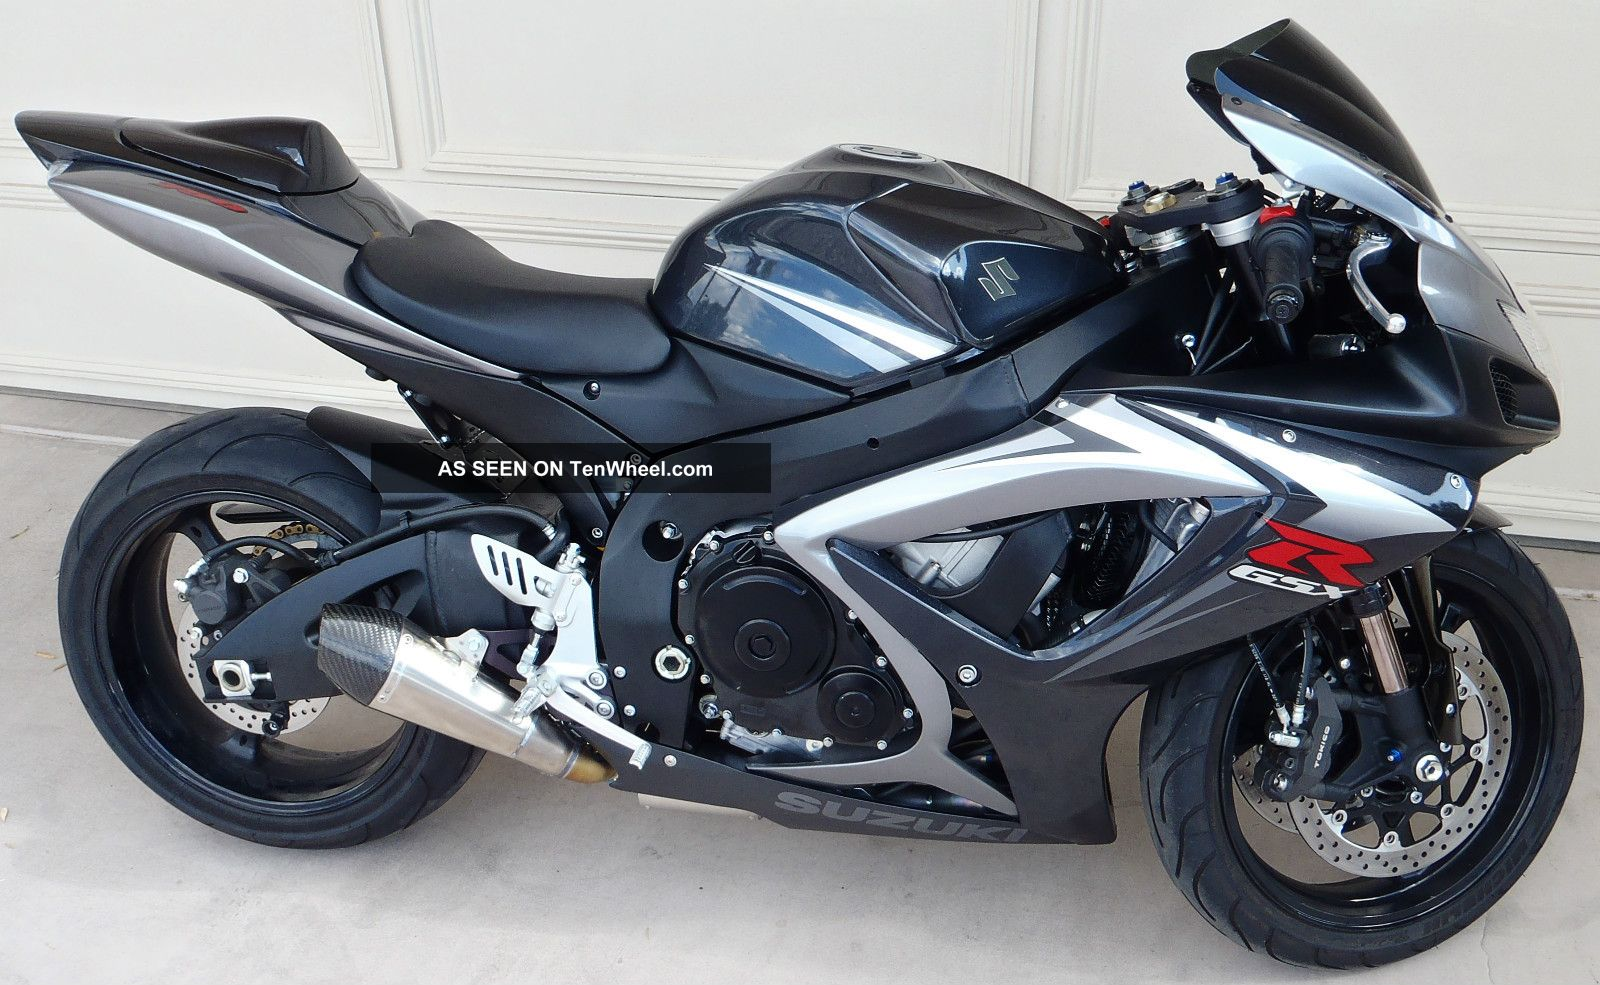 2007 suzuki gsxr 750 - photo #19